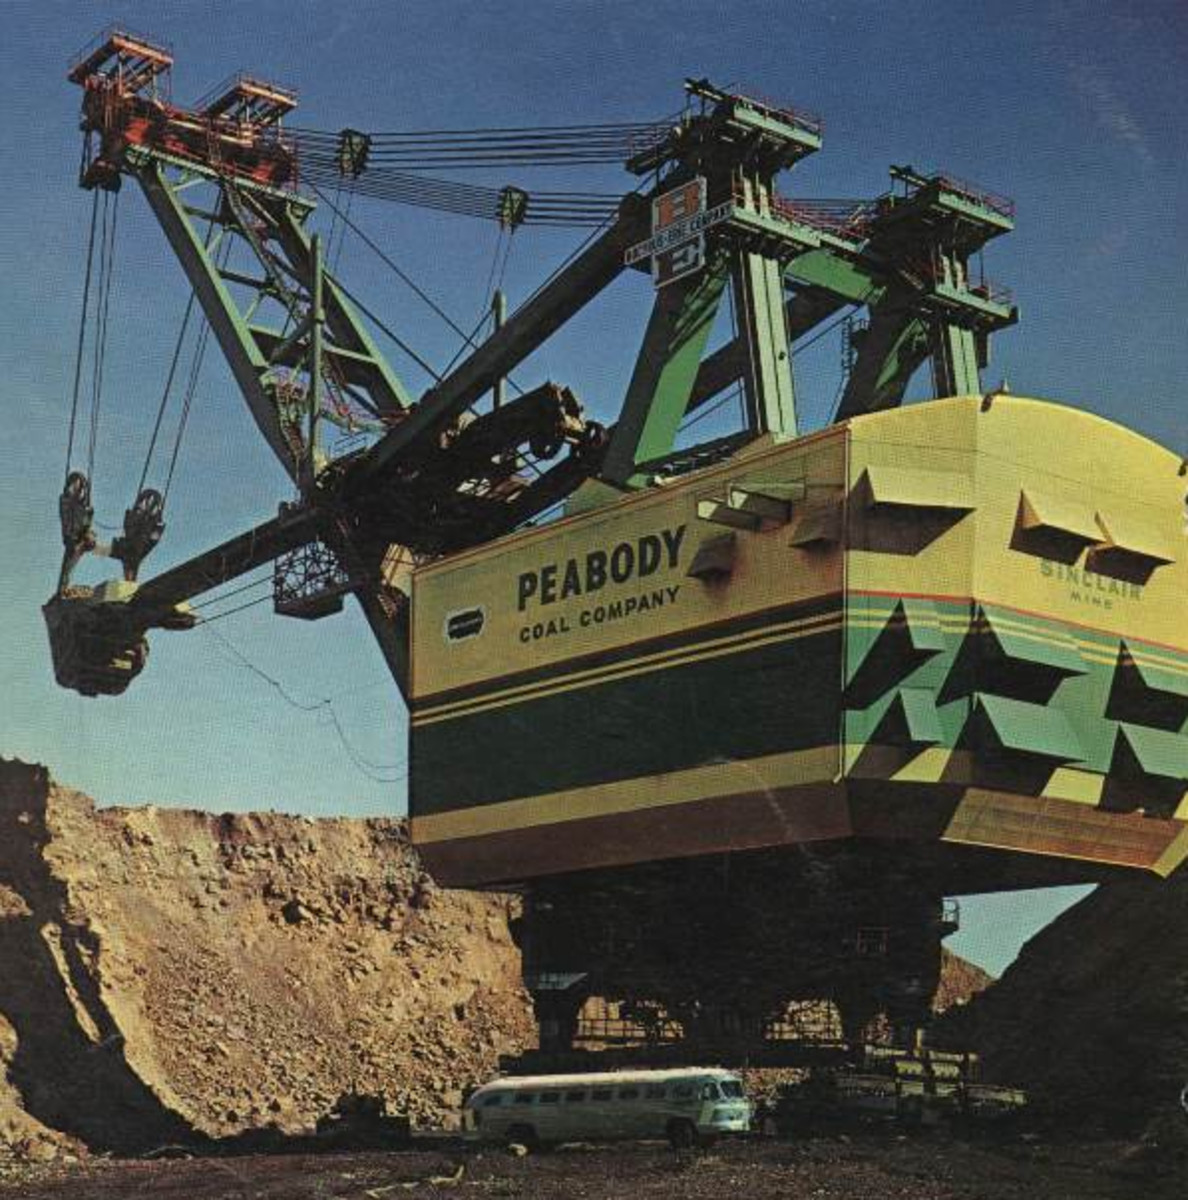 The Bucyrus Erie 3850-B Power Shovel went to work at the Paradise Fossil Plant for Peabody Coal Company's (Peabody  Energy) Sinclair Surface Mine in 1962. (Photo: MichaelBNA/Wikimedia Commons)